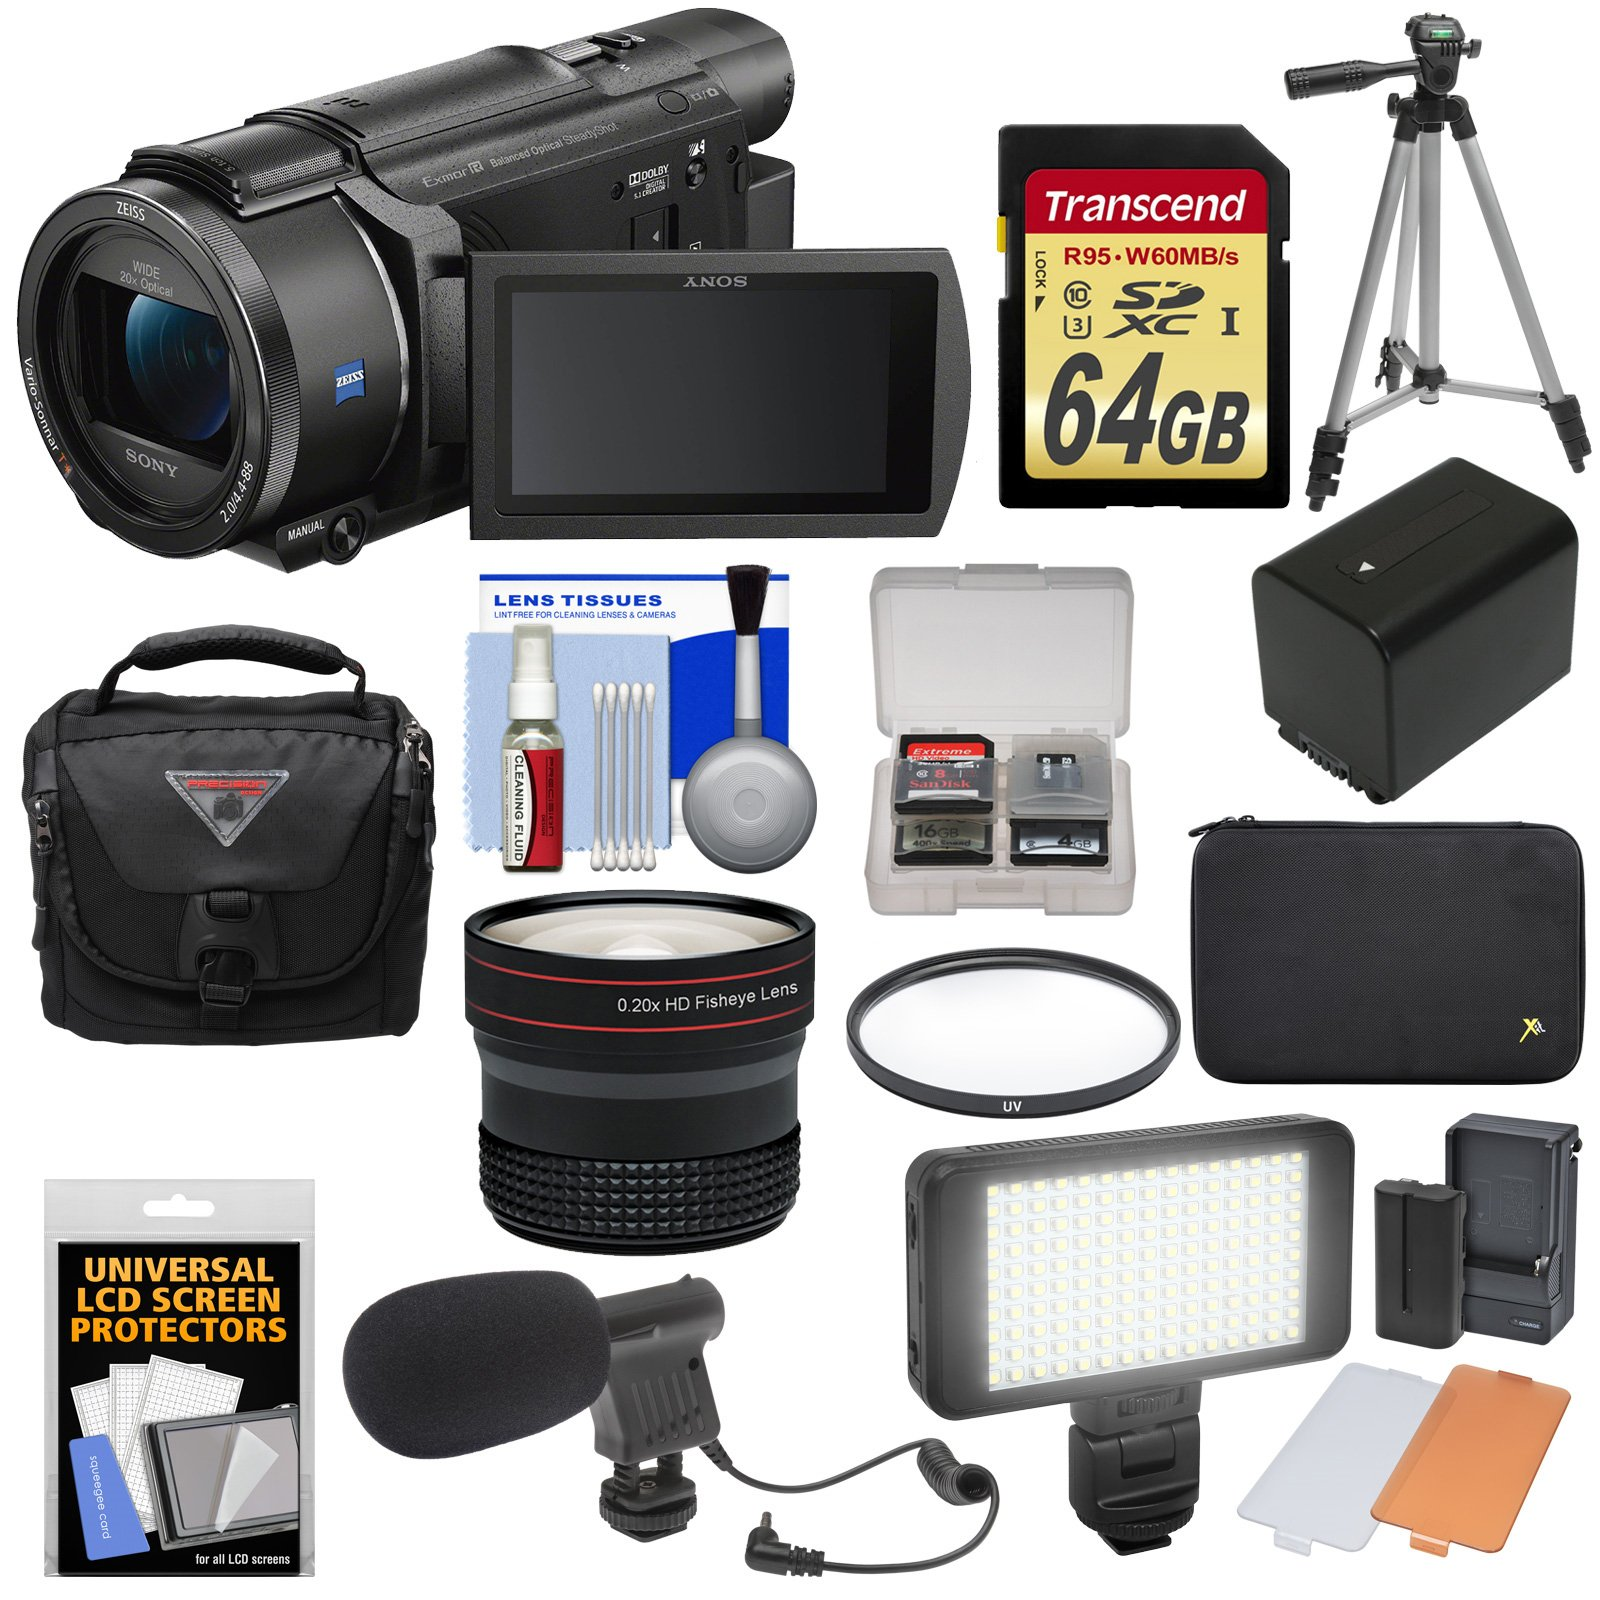 Sony Handycam FDR-AX53 Wi-Fi 4K Ultra HD Video Camera Camcorder with 64GB Card + Battery + Case + Tripod + LED Light + Microphone + Fisheye Lens + Kit by Sony